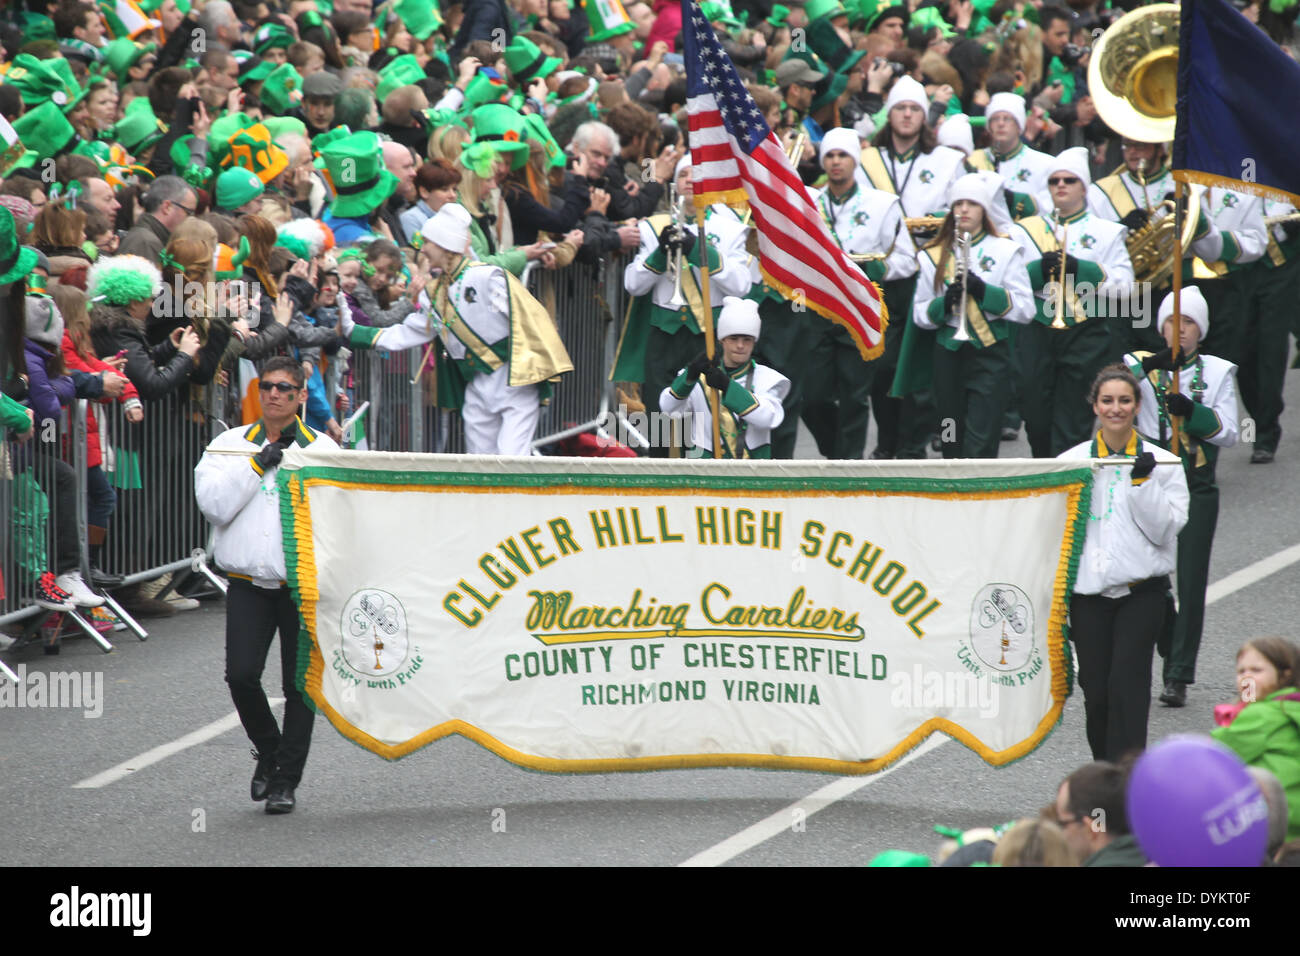 The Clover Hill High School band at the Saint Patrick's Day parade